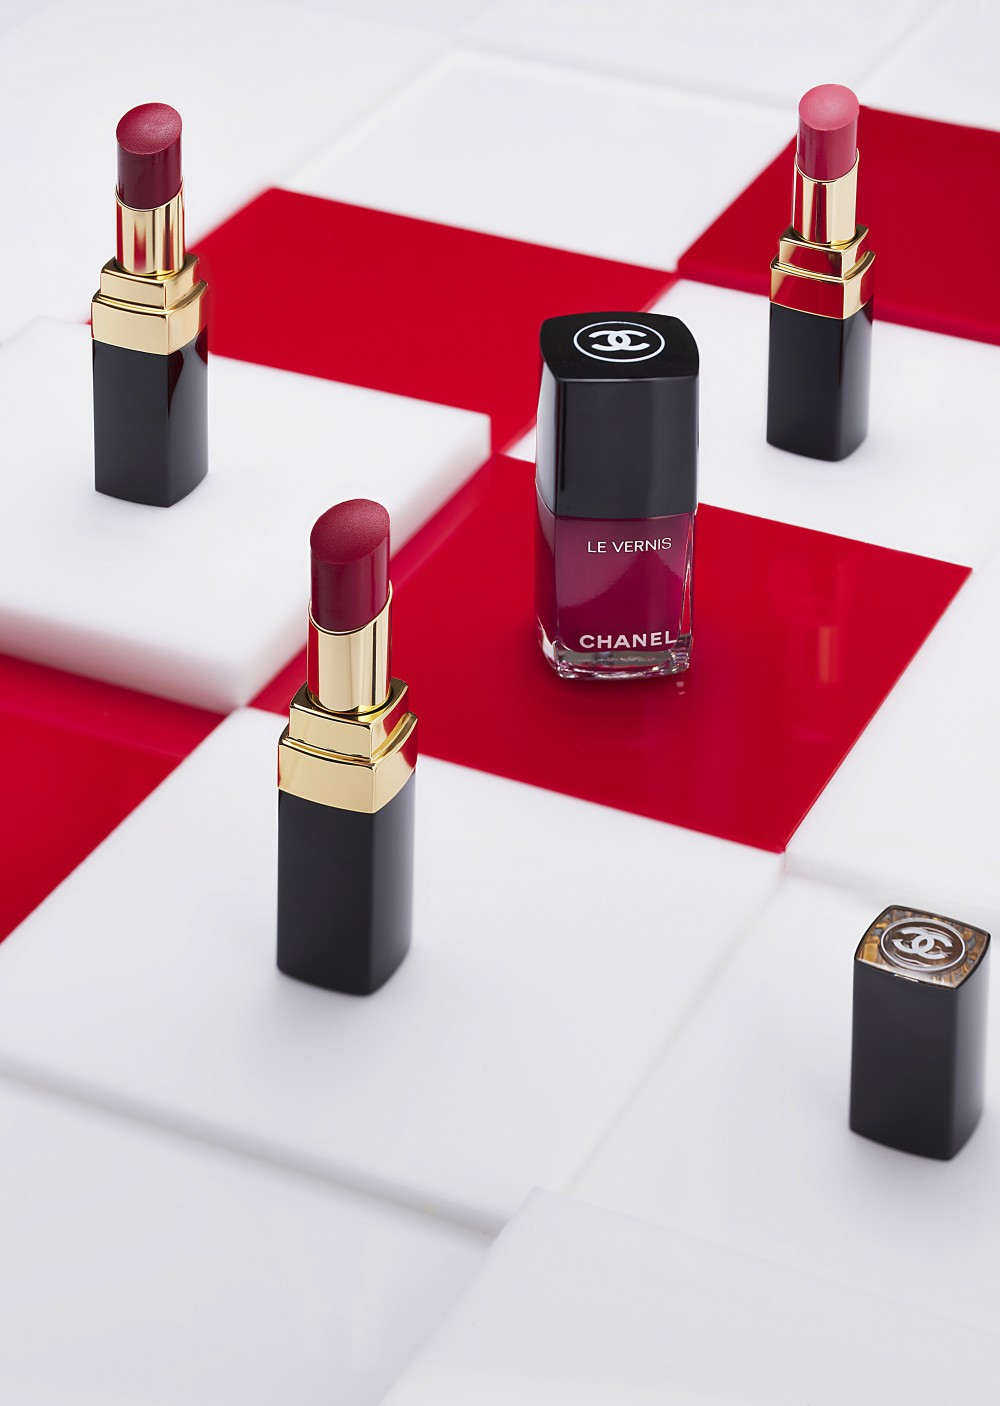 CHANEL ROUGE COCO FLASH 透亮光感唇膏 HK$290